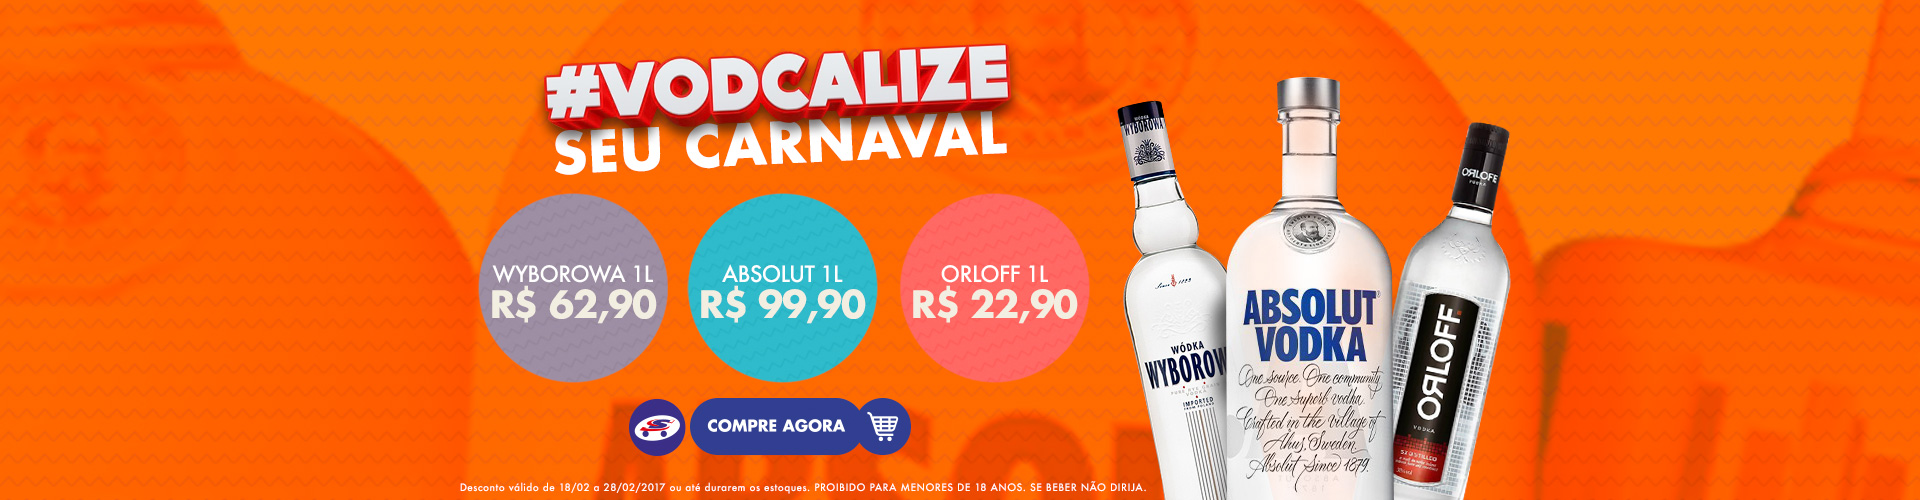 vodcalize